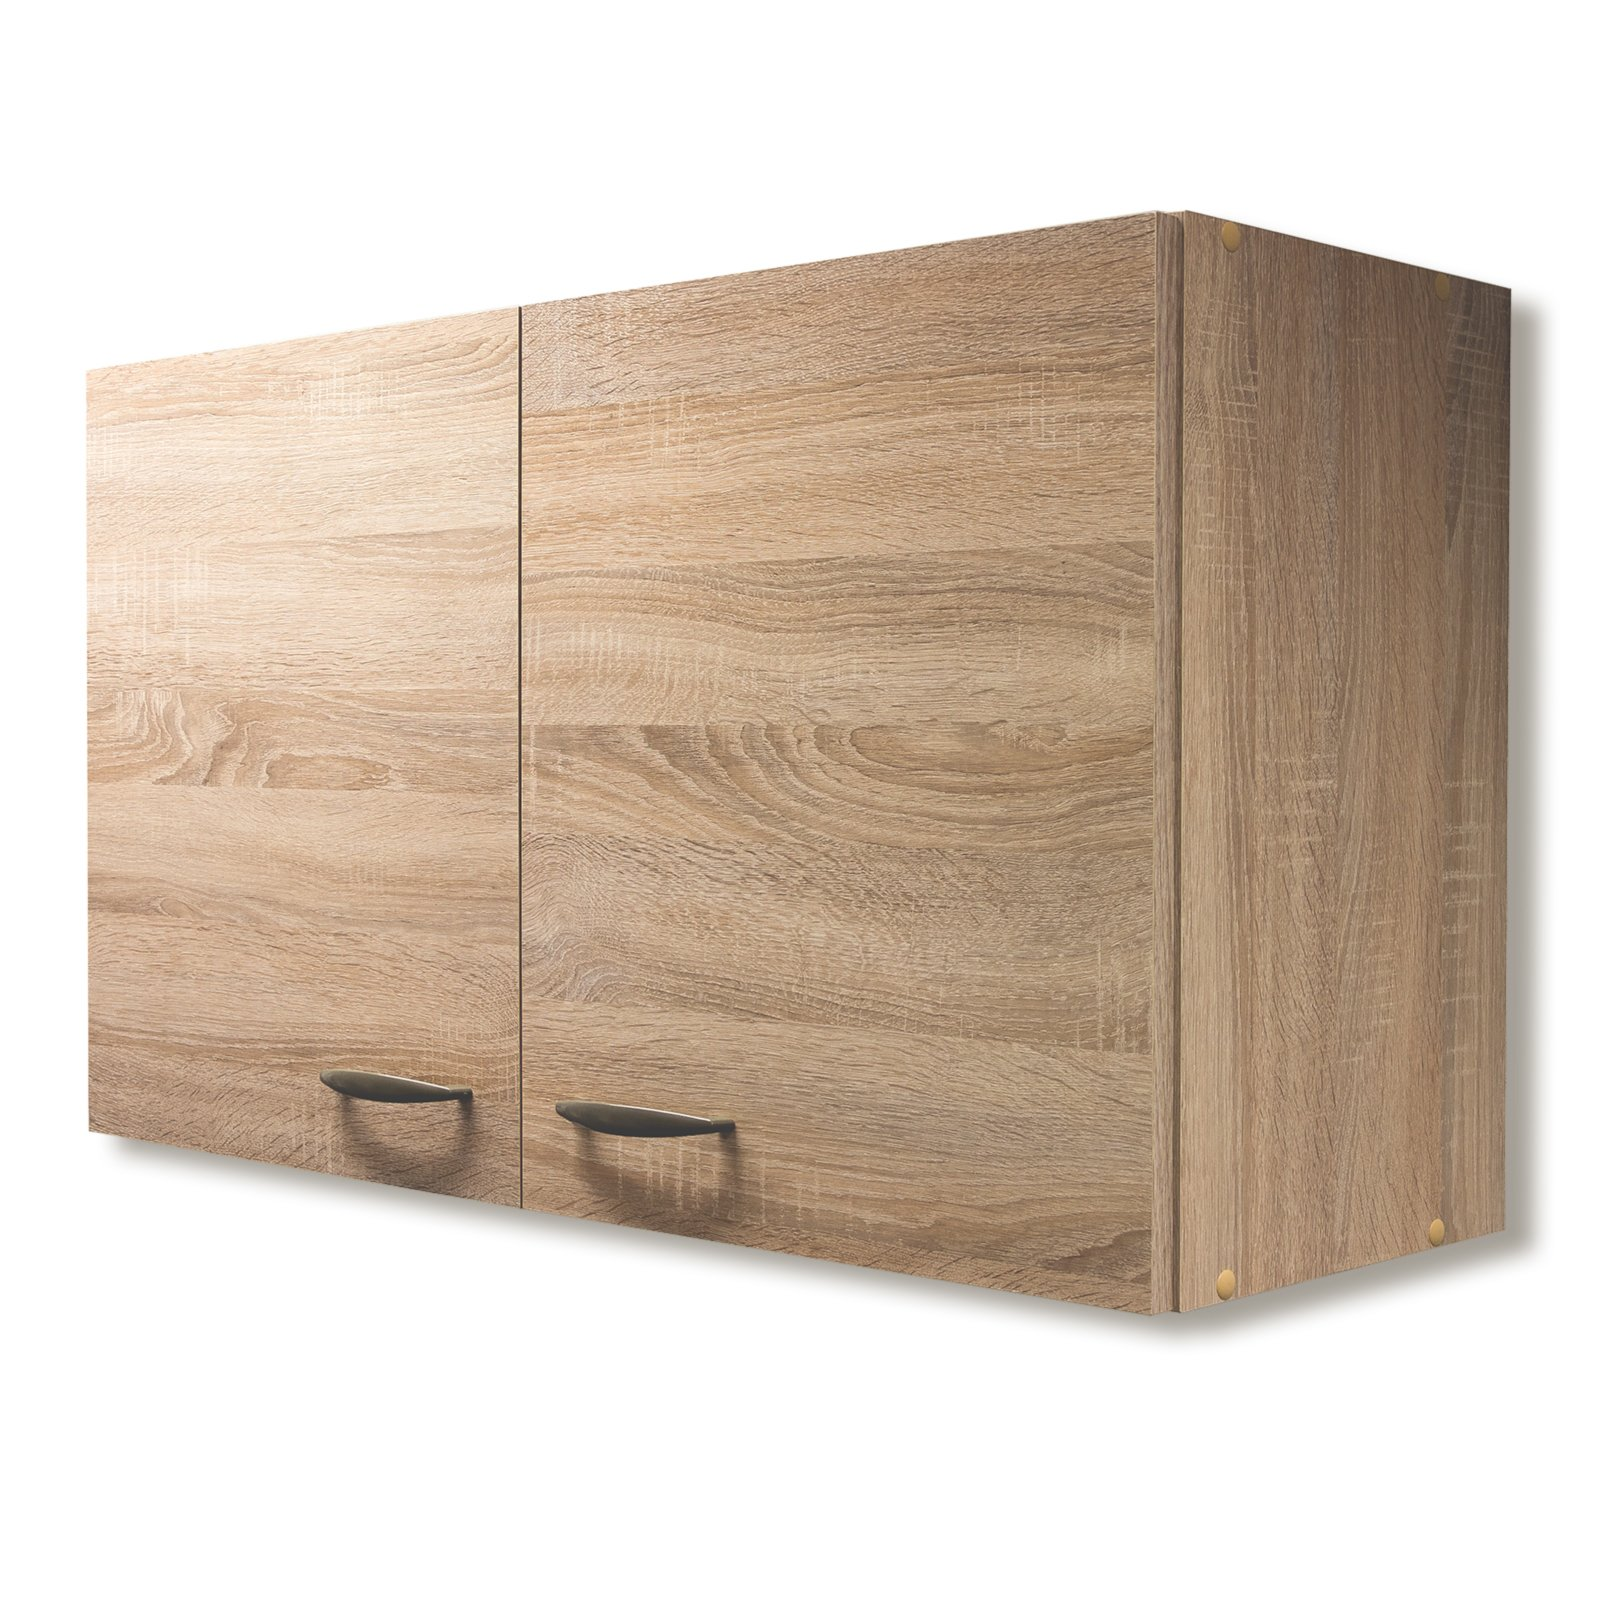 h ngeschrank oslo sonoma eiche 100 cm breit h ngeschr nke einzelschr nke. Black Bedroom Furniture Sets. Home Design Ideas